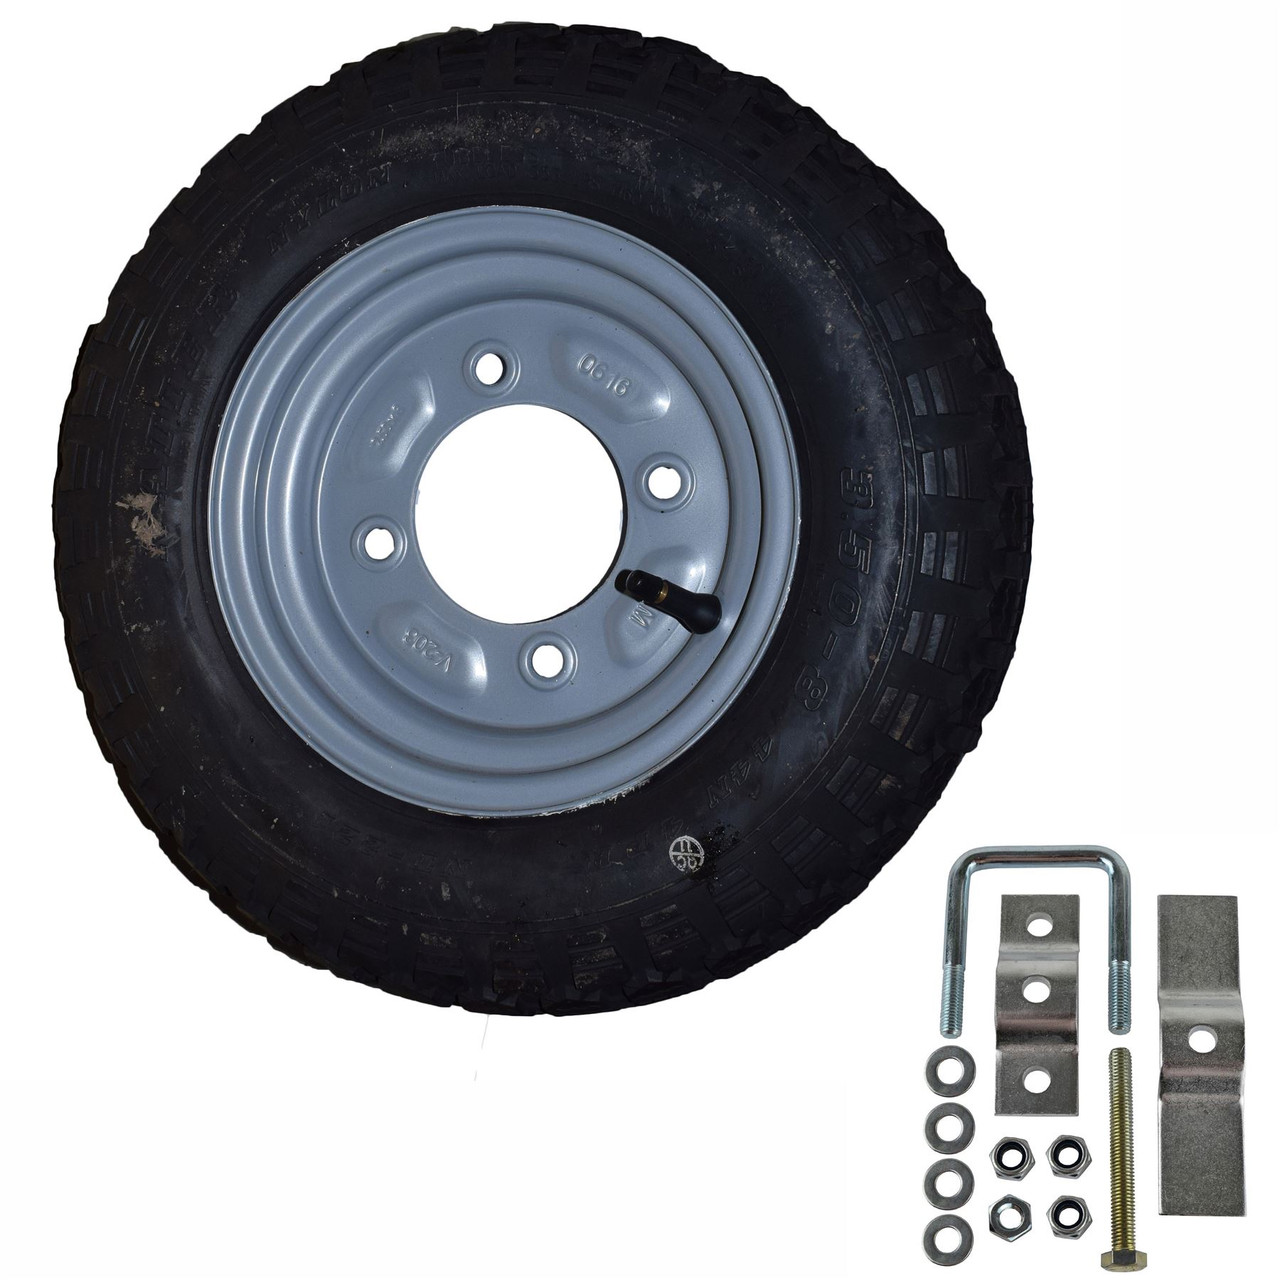 Spare Wheel & Tyre with Mounting Bracket for Erde & Daxara 100 101 102 Trailer